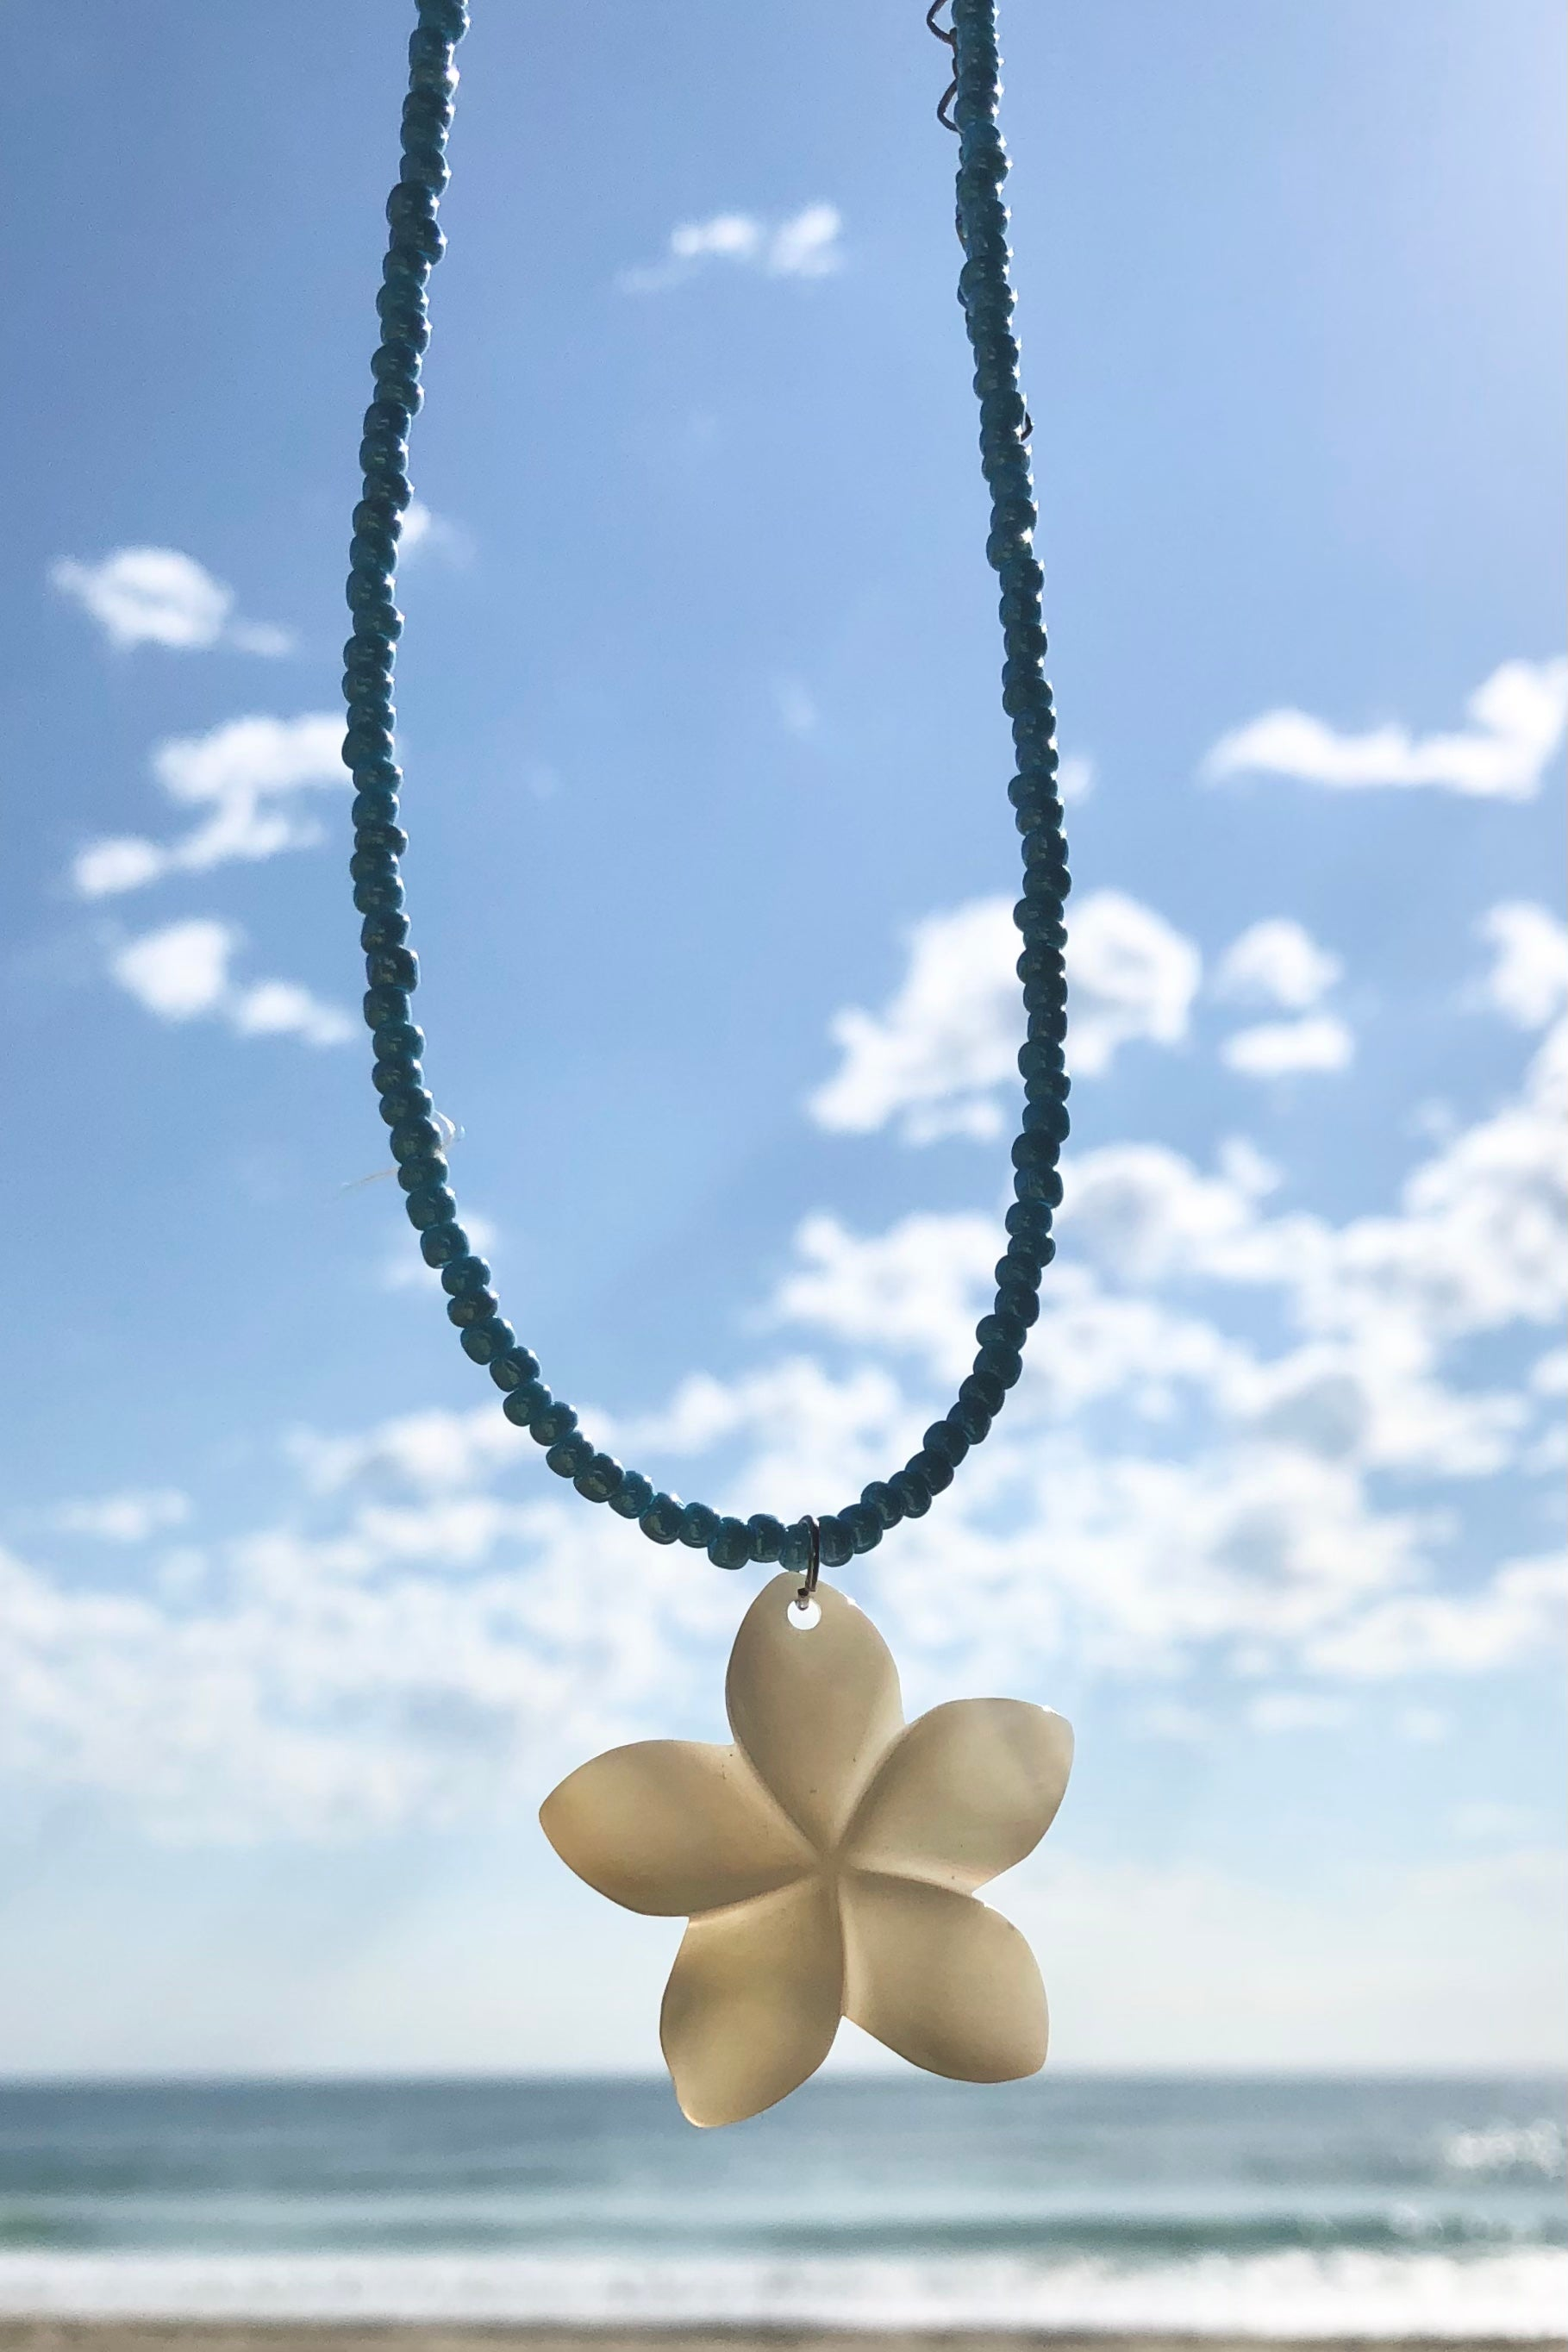 these frangipani flowers hand carved from Mother of Pearl shell all carry the distinctive marks of the artist who created them, no two flowers are ever alike,  strung on pearlescent pale blue glass beads.